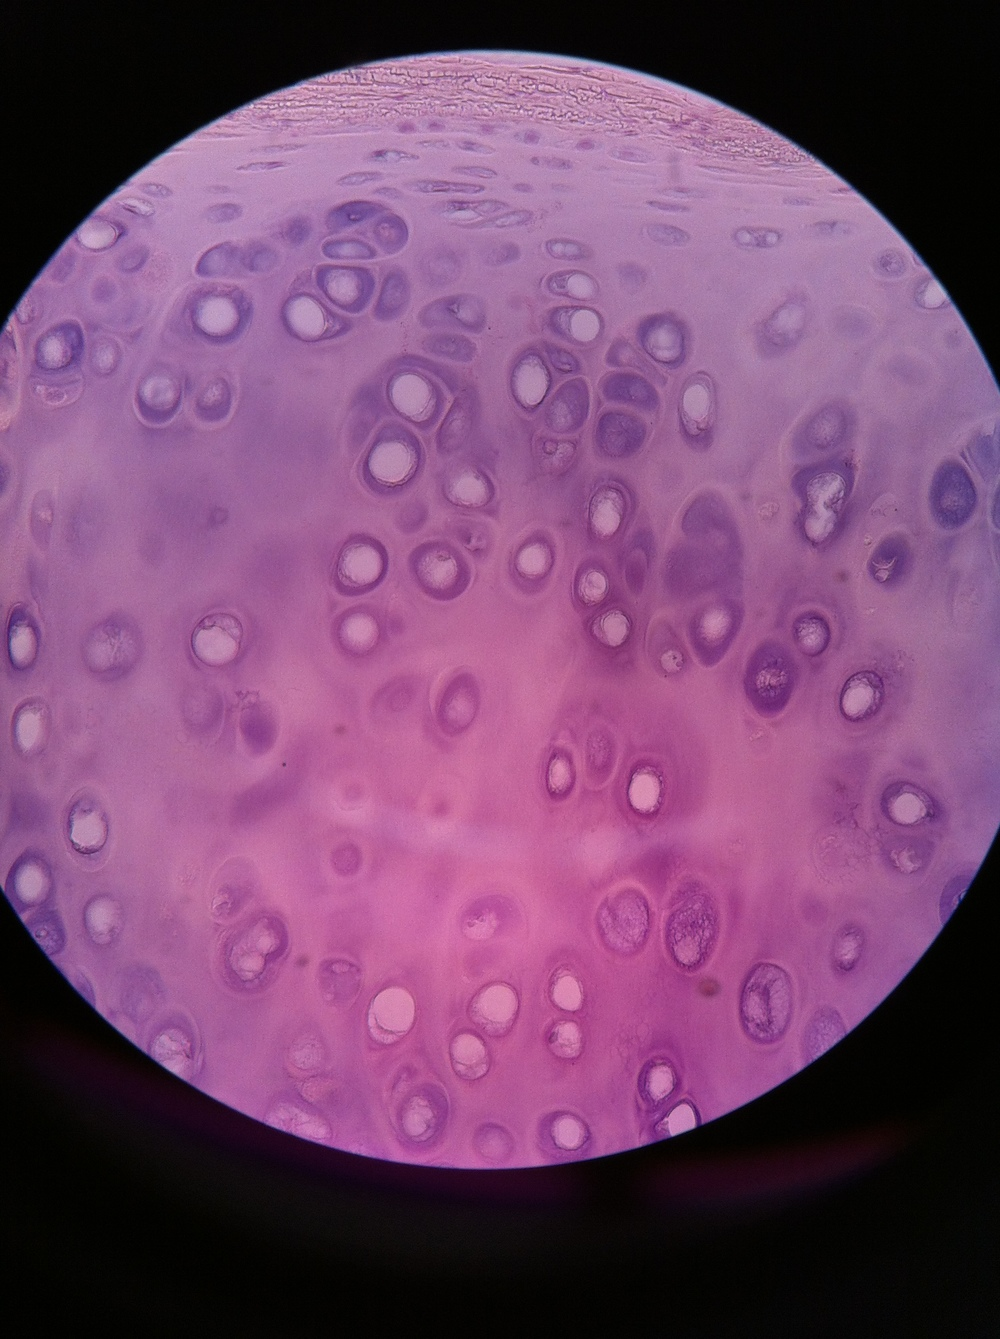 Hyaline cartilage, Total Mag: 400X